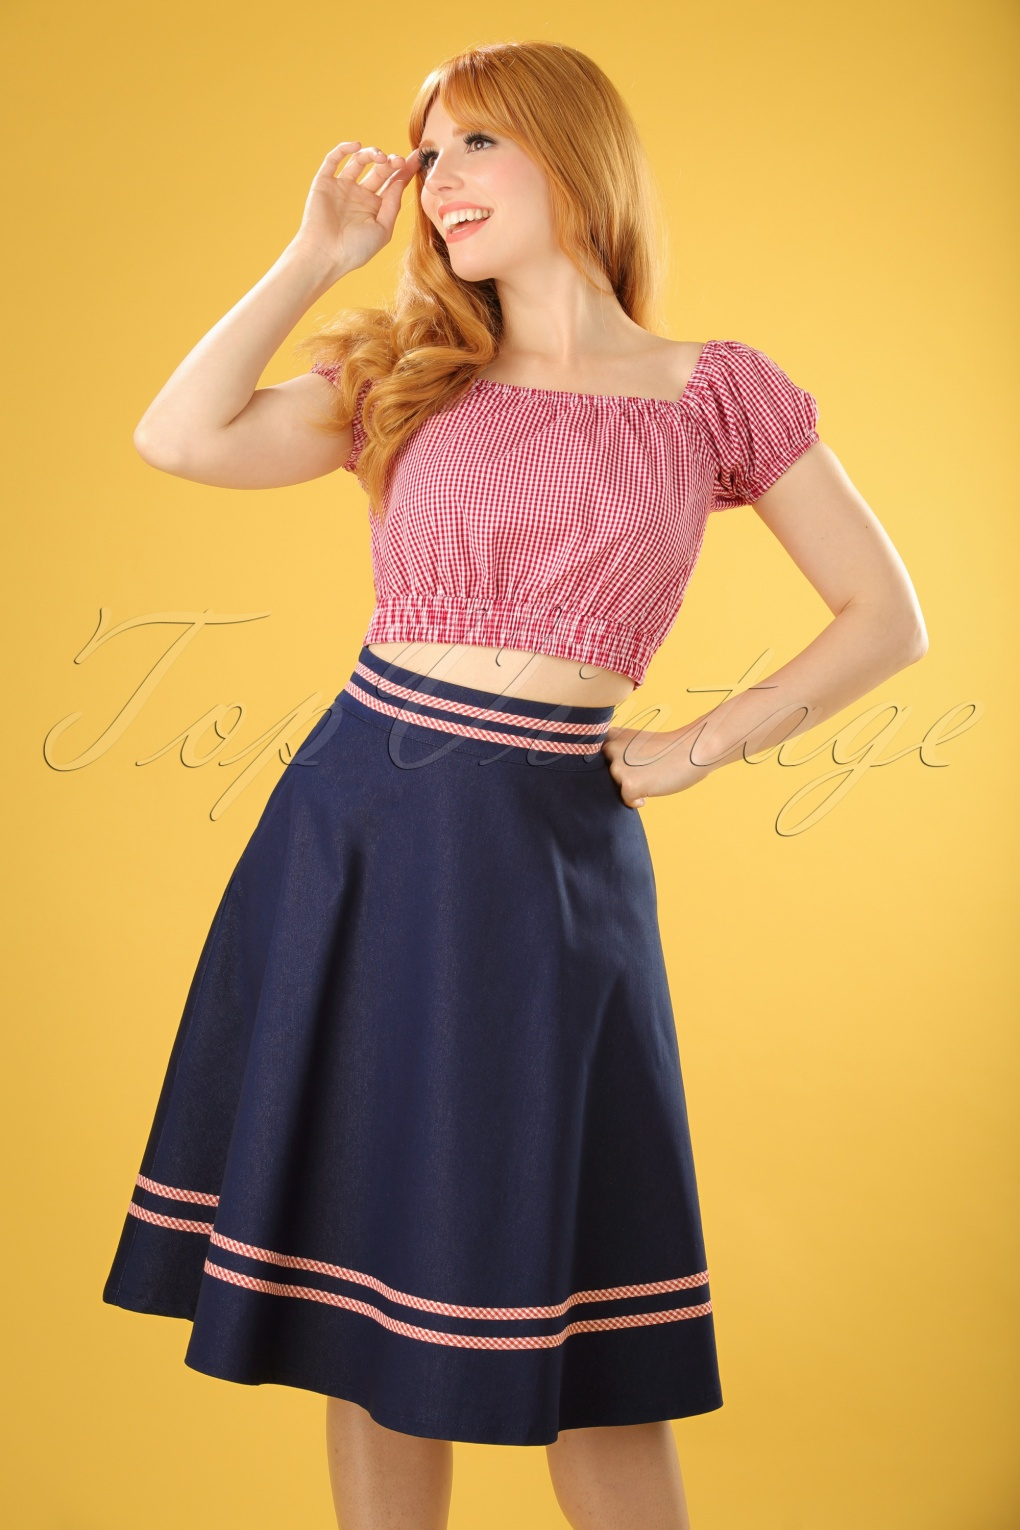 1950s Skirts; Pinup, Poodle, Pencil, Swing & Circle Skirts 50s Jadore Swing Skirt in Navy £22.73 AT vintagedancer.com